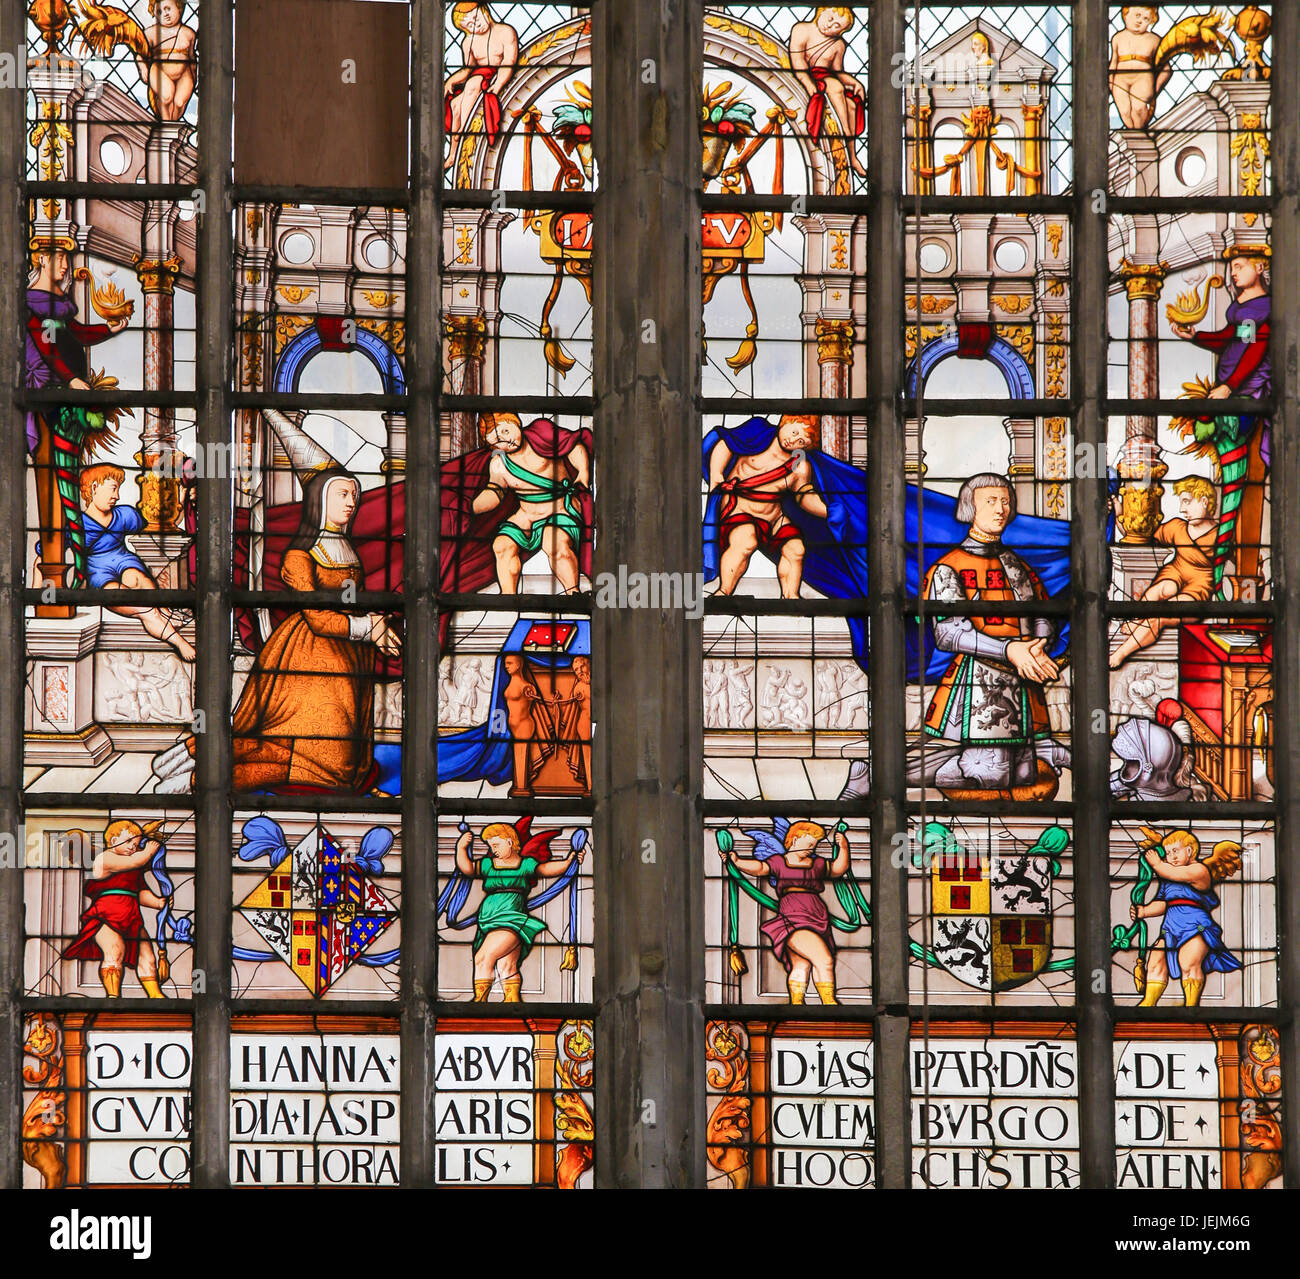 Stained Glass window in St Gummarus Church in Lier, Belgium, depicting Philip I the Fair and Joanna of Castile Stock Photo